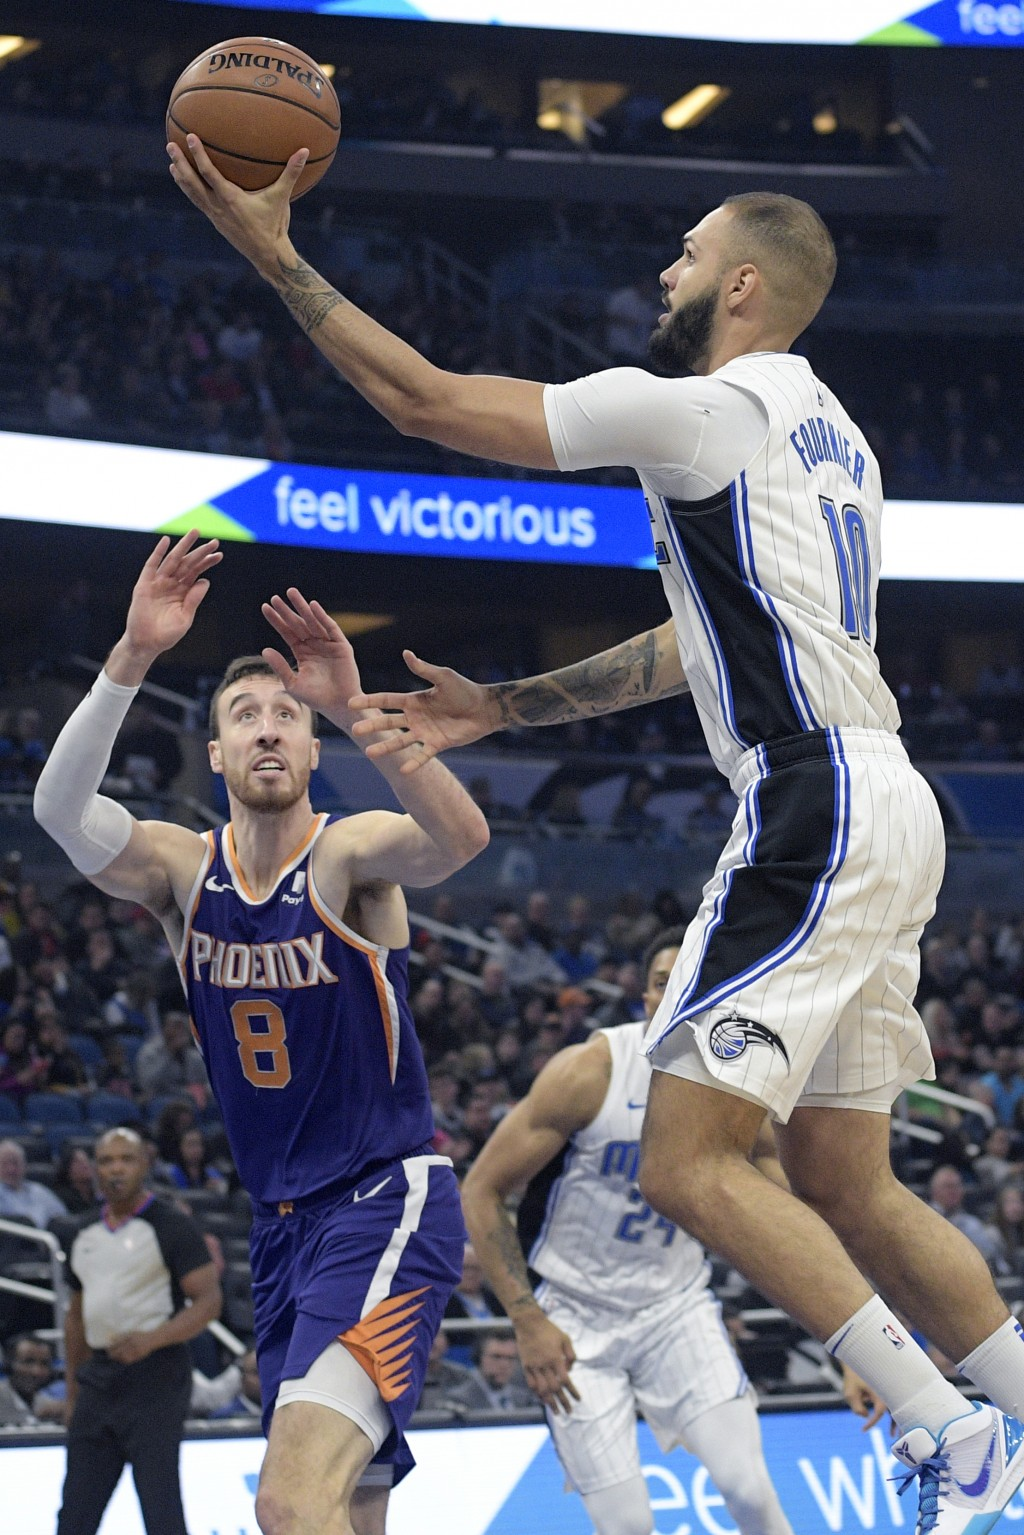 Orlando Magic guard Evan Fournier (10) goes up for a shot in front of Phoenix Suns forward Frank Kaminsky (8) during the first half of an NBA basketba...